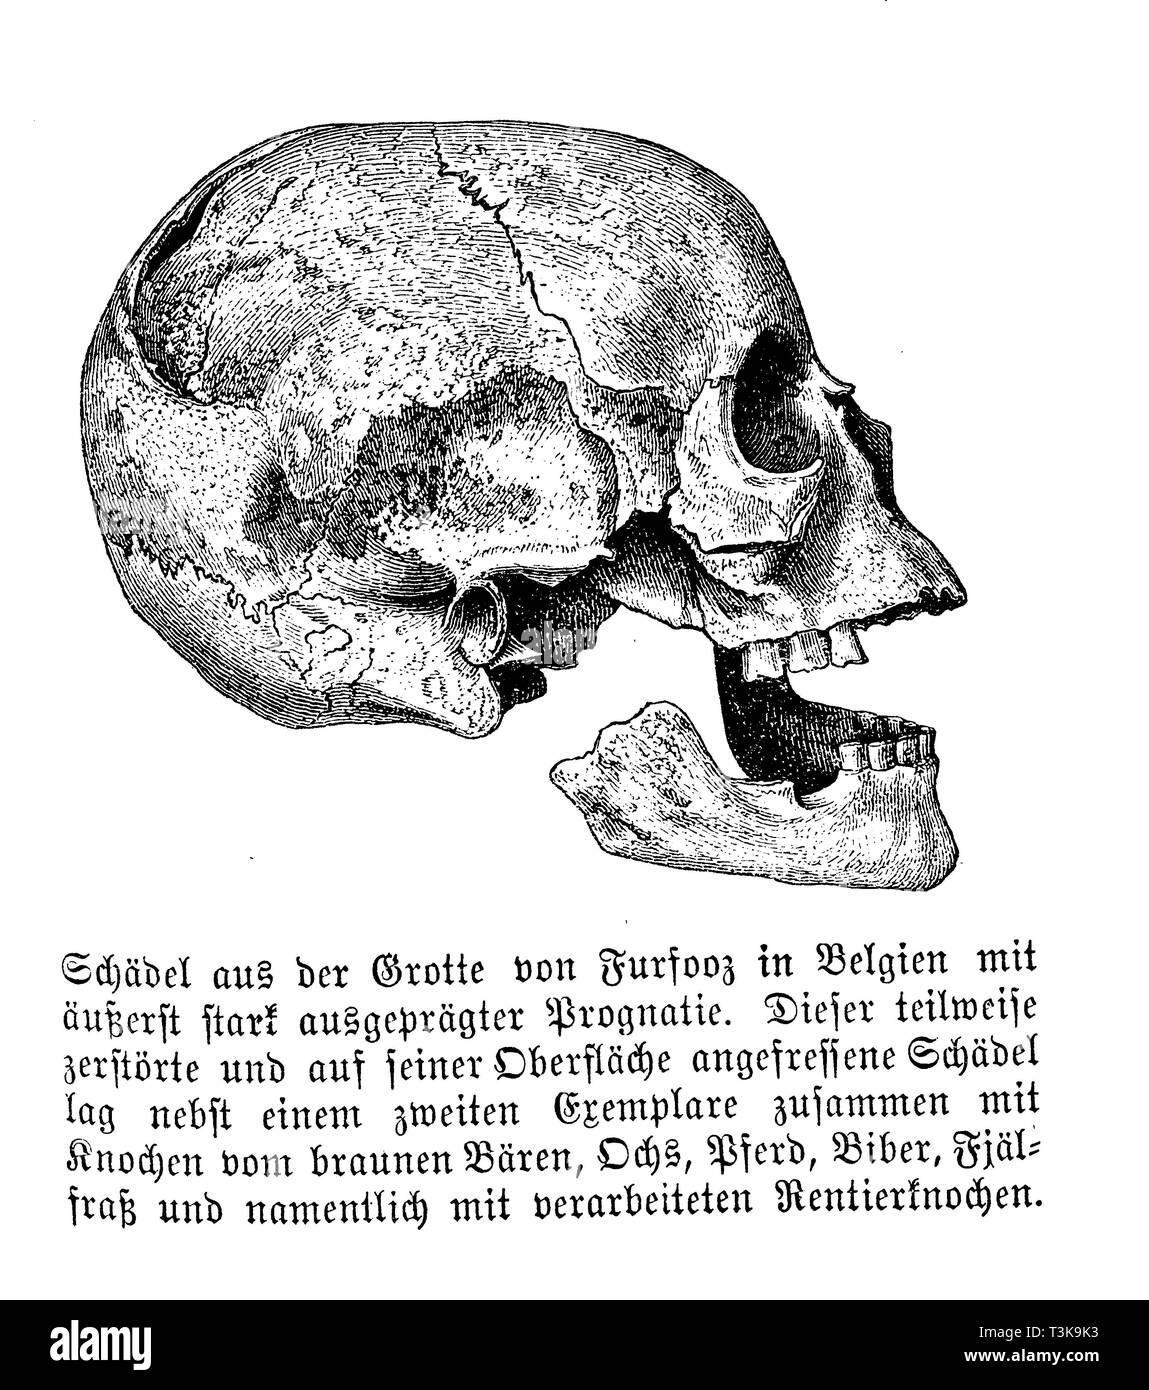 Skull from the Furfooz Grotto in Belgium with extremely pronounced prognosis. This partially destroyed skull, which had been eaten on its surface, lay together with a second specimen together with bones of the brown bear, ox, horse, beaver, fjeld food and especially with processed reindeer bones., anonym - Stock Image